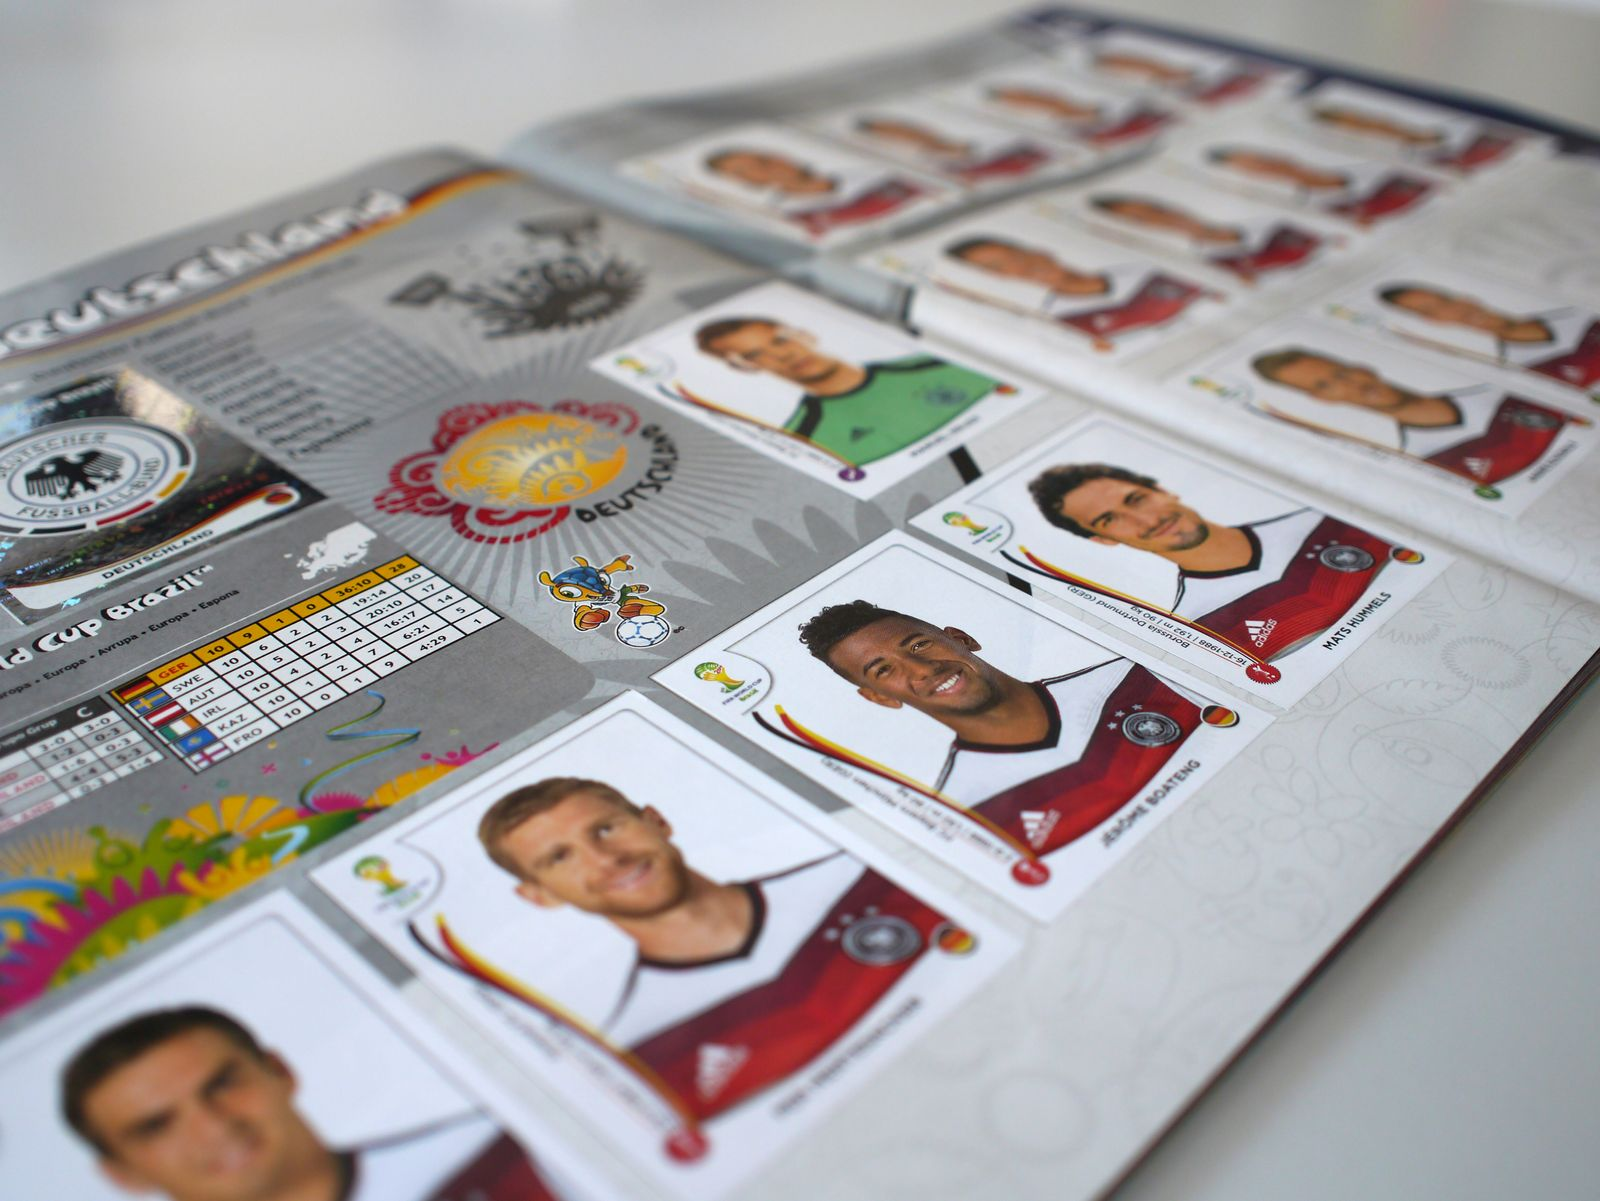 Panini-Sticker/ Fussball